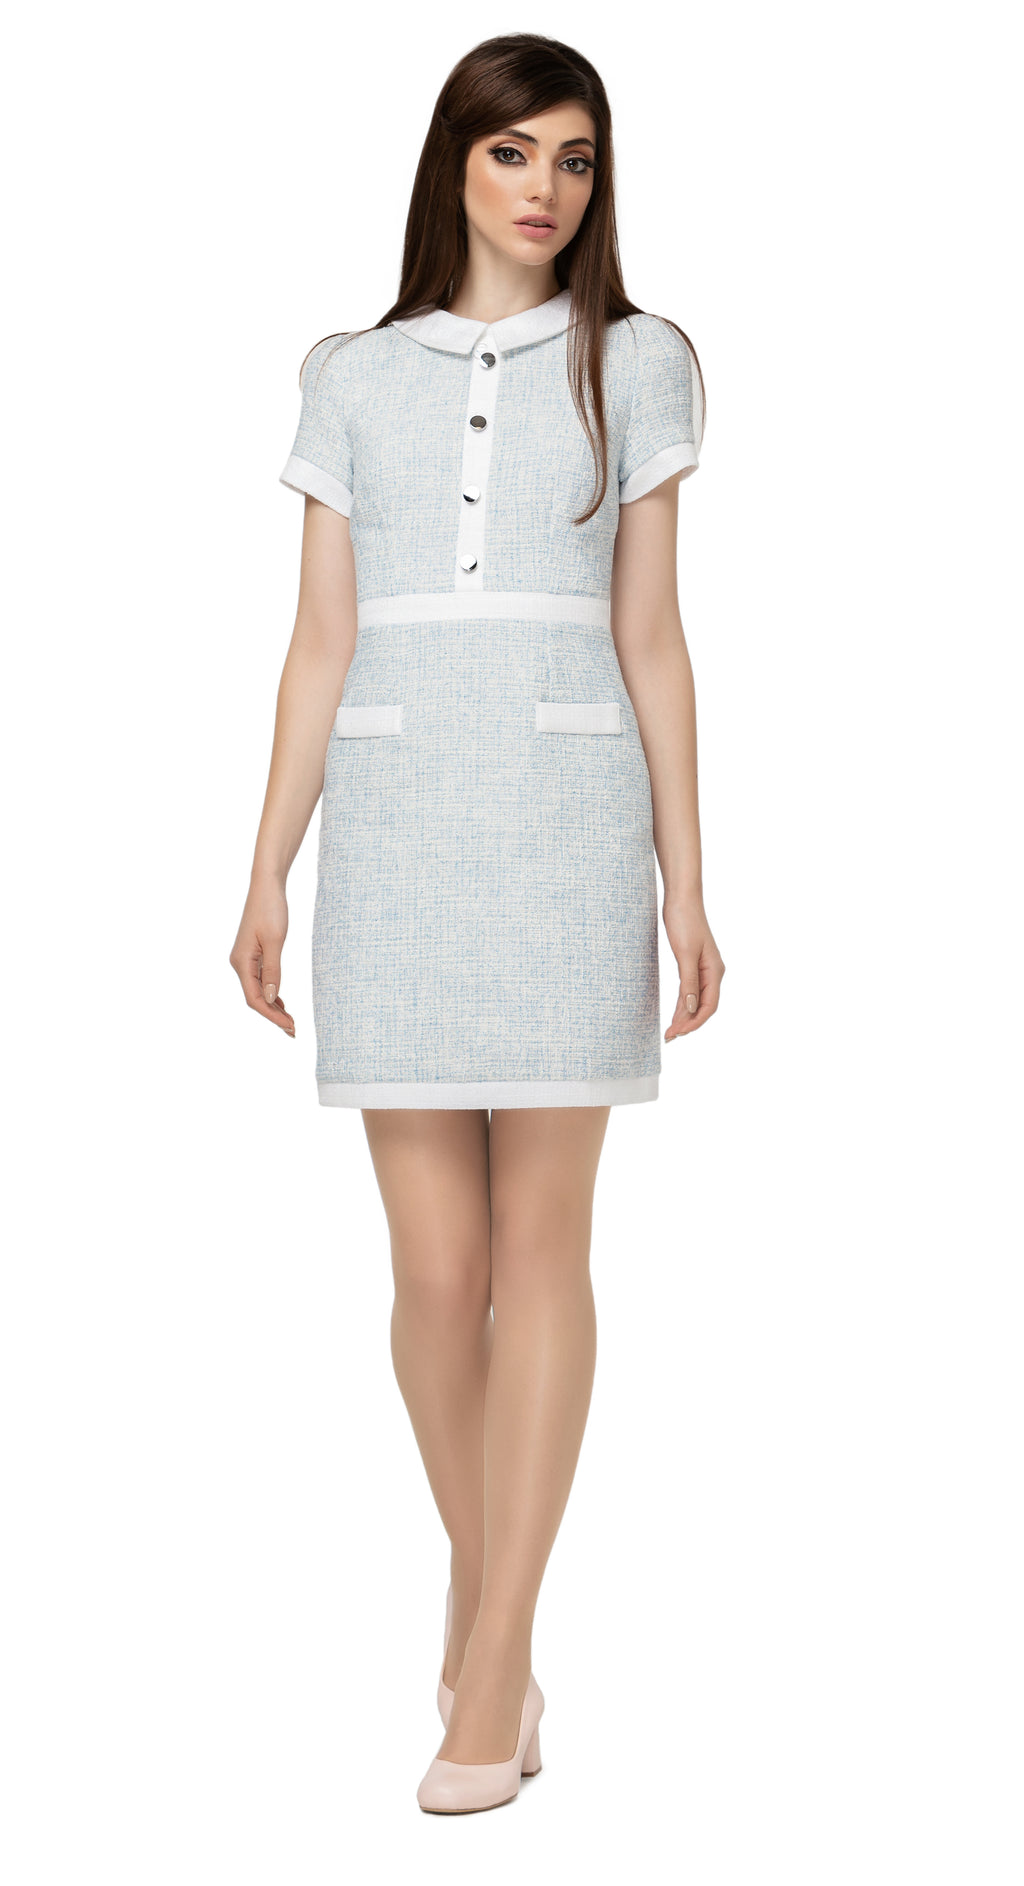 "60s Spring pale blue and white Spanish weave dress with classic collar, 4 silver button detailing on torso with contrasting waist, front essentials pockets and short sleeves.  Choose bespoke for sleeveless or 3/4"" sleeves or preferred dress length."